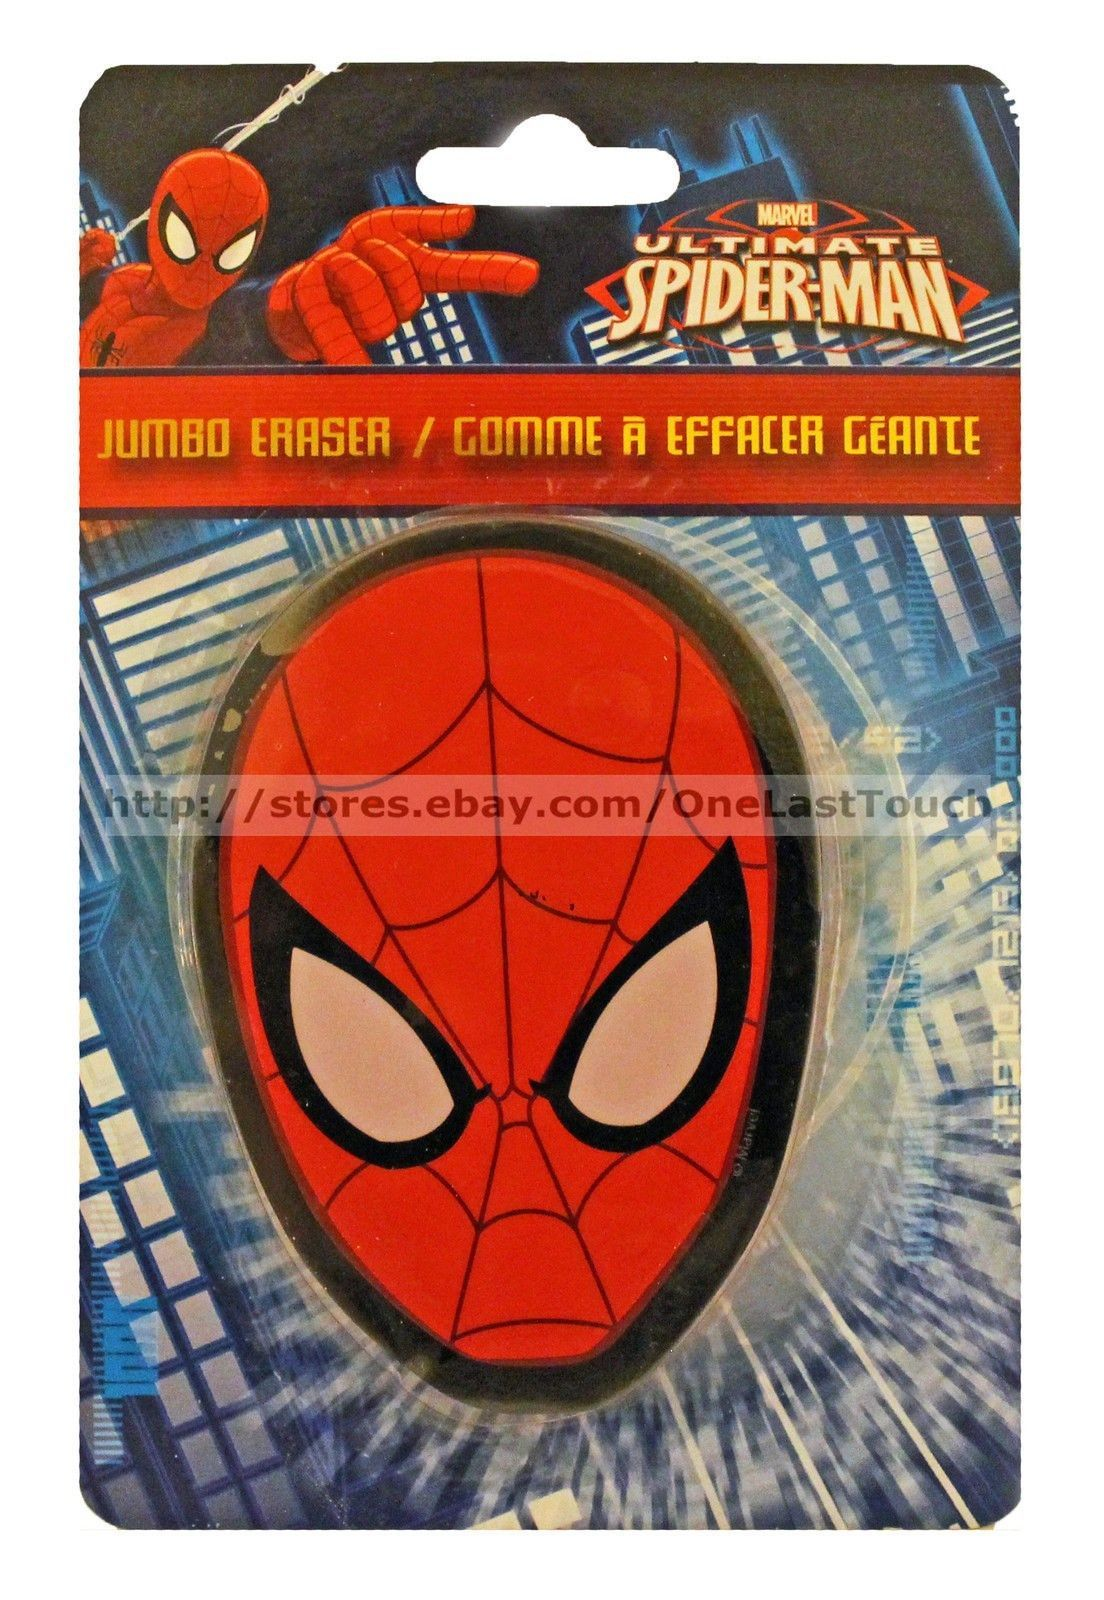 ULTIMATE SPIDER-MAN* Head Shaped JUMBO ERASER School/Office MARVEL Red (Carded)